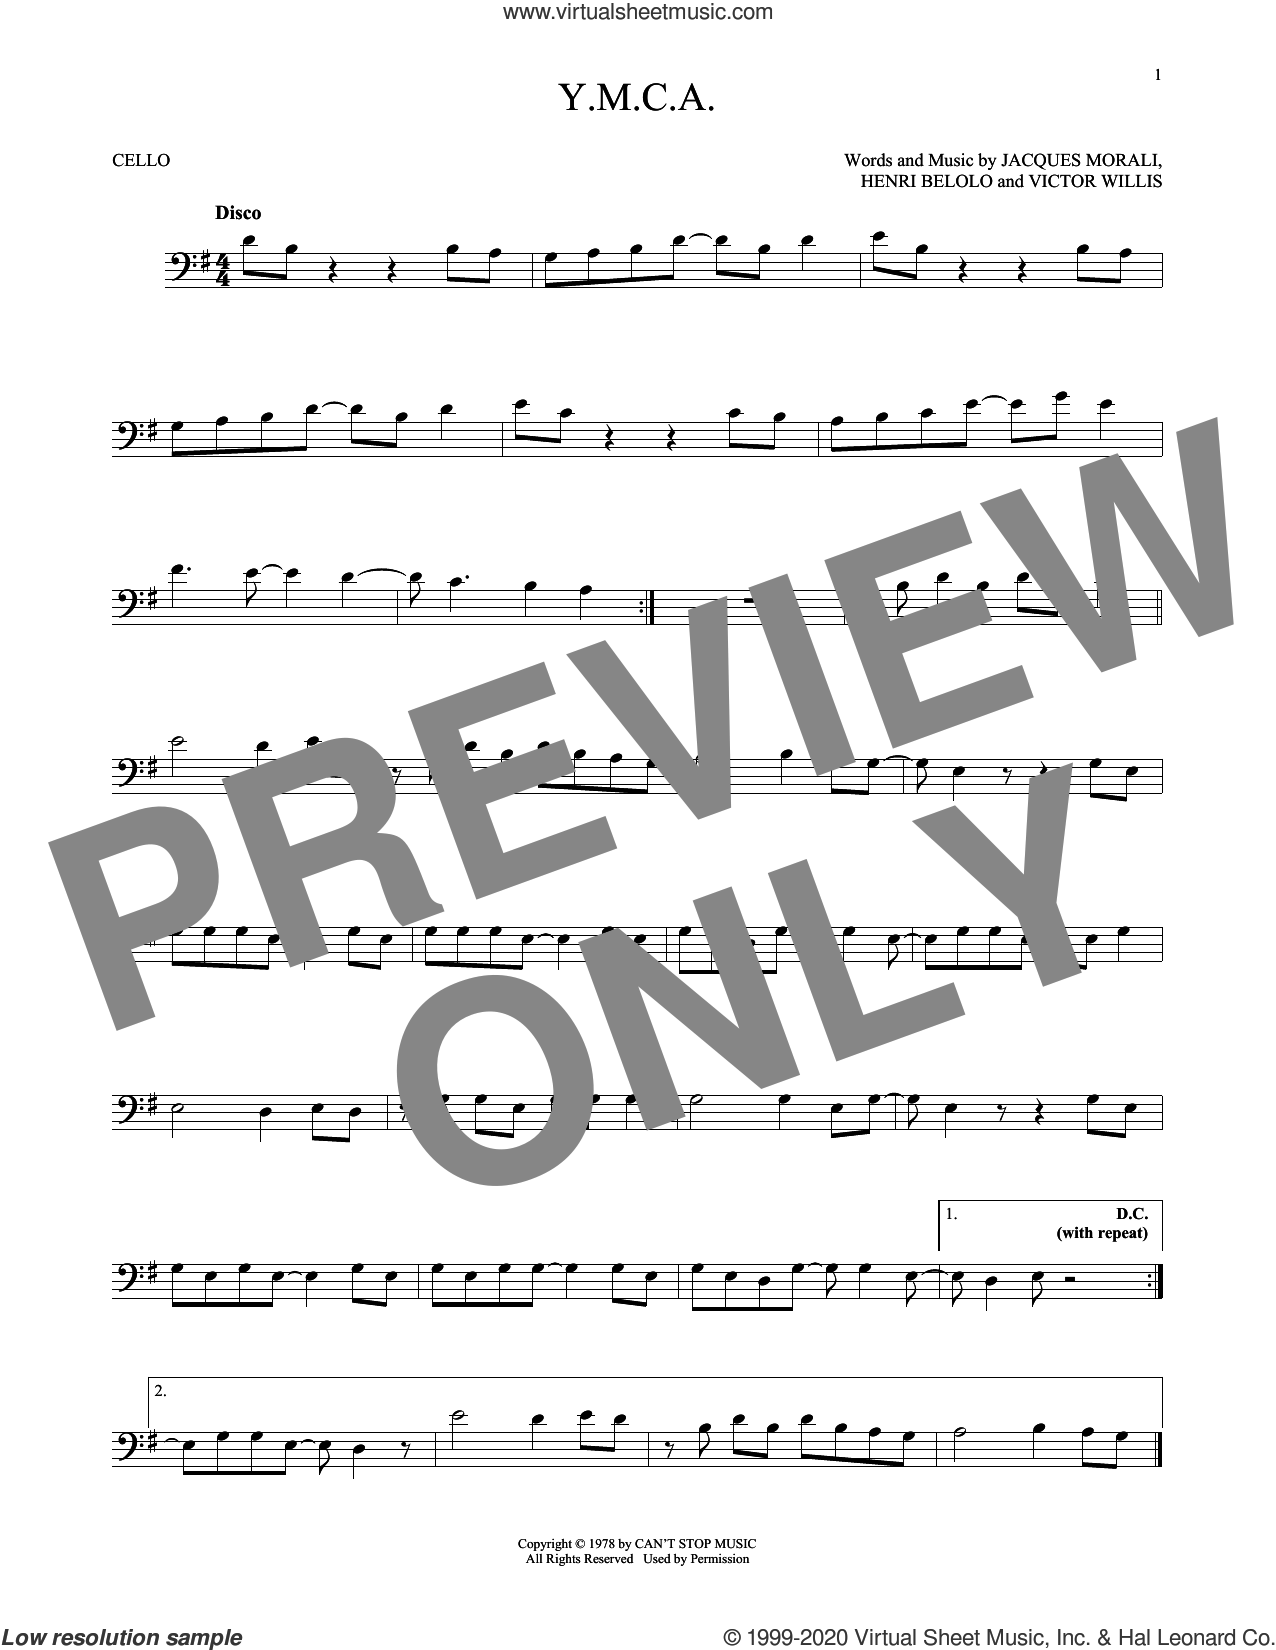 Y.M.C.A. sheet music for cello solo by Village People, Henri Belolo, Jacques Morali and Victor Willis, intermediate skill level